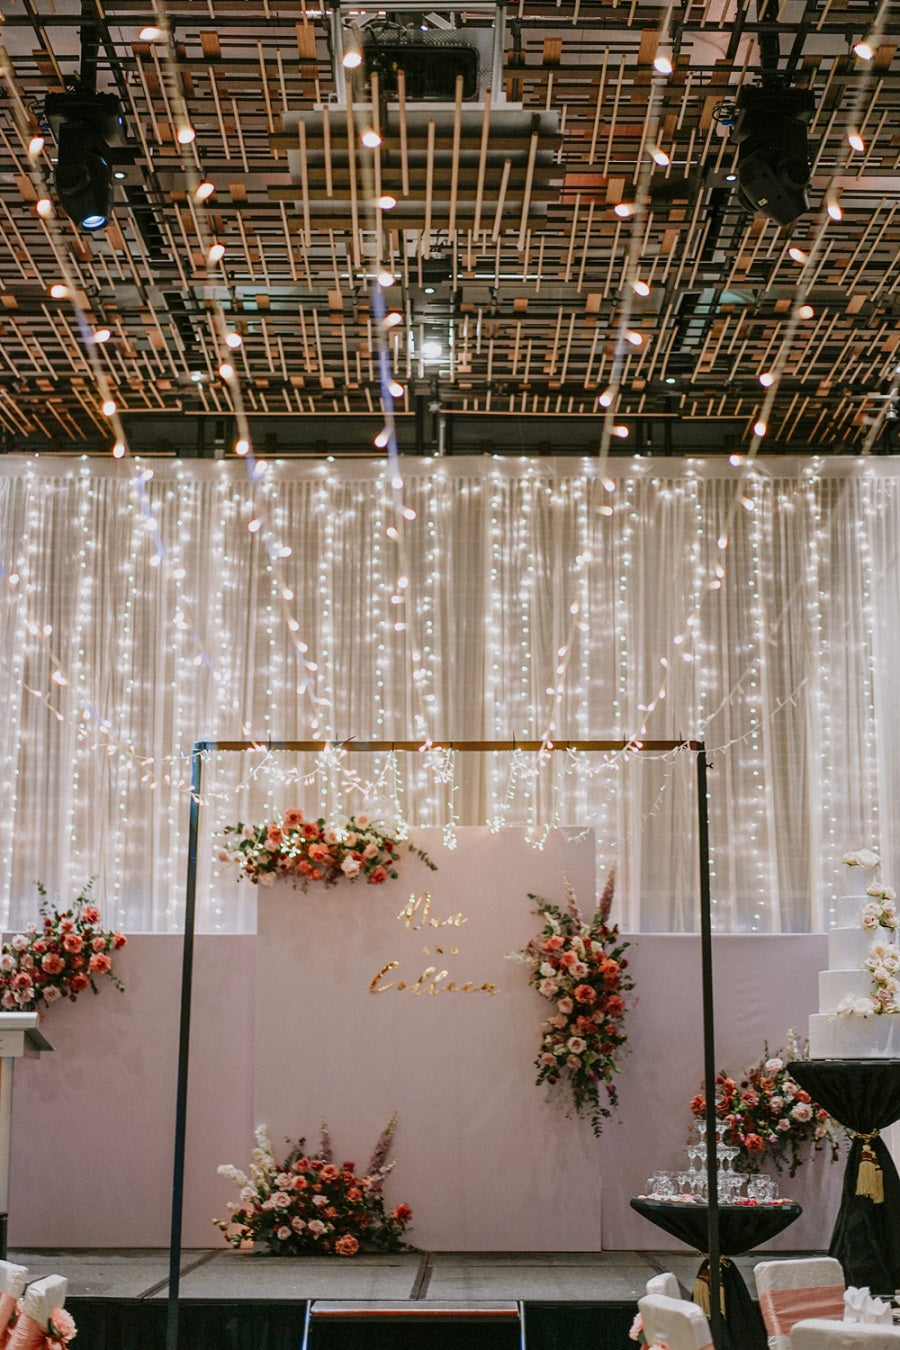 Cascading fairy lights strung on ceiling for whimsical events decoration as a wedding backdrop